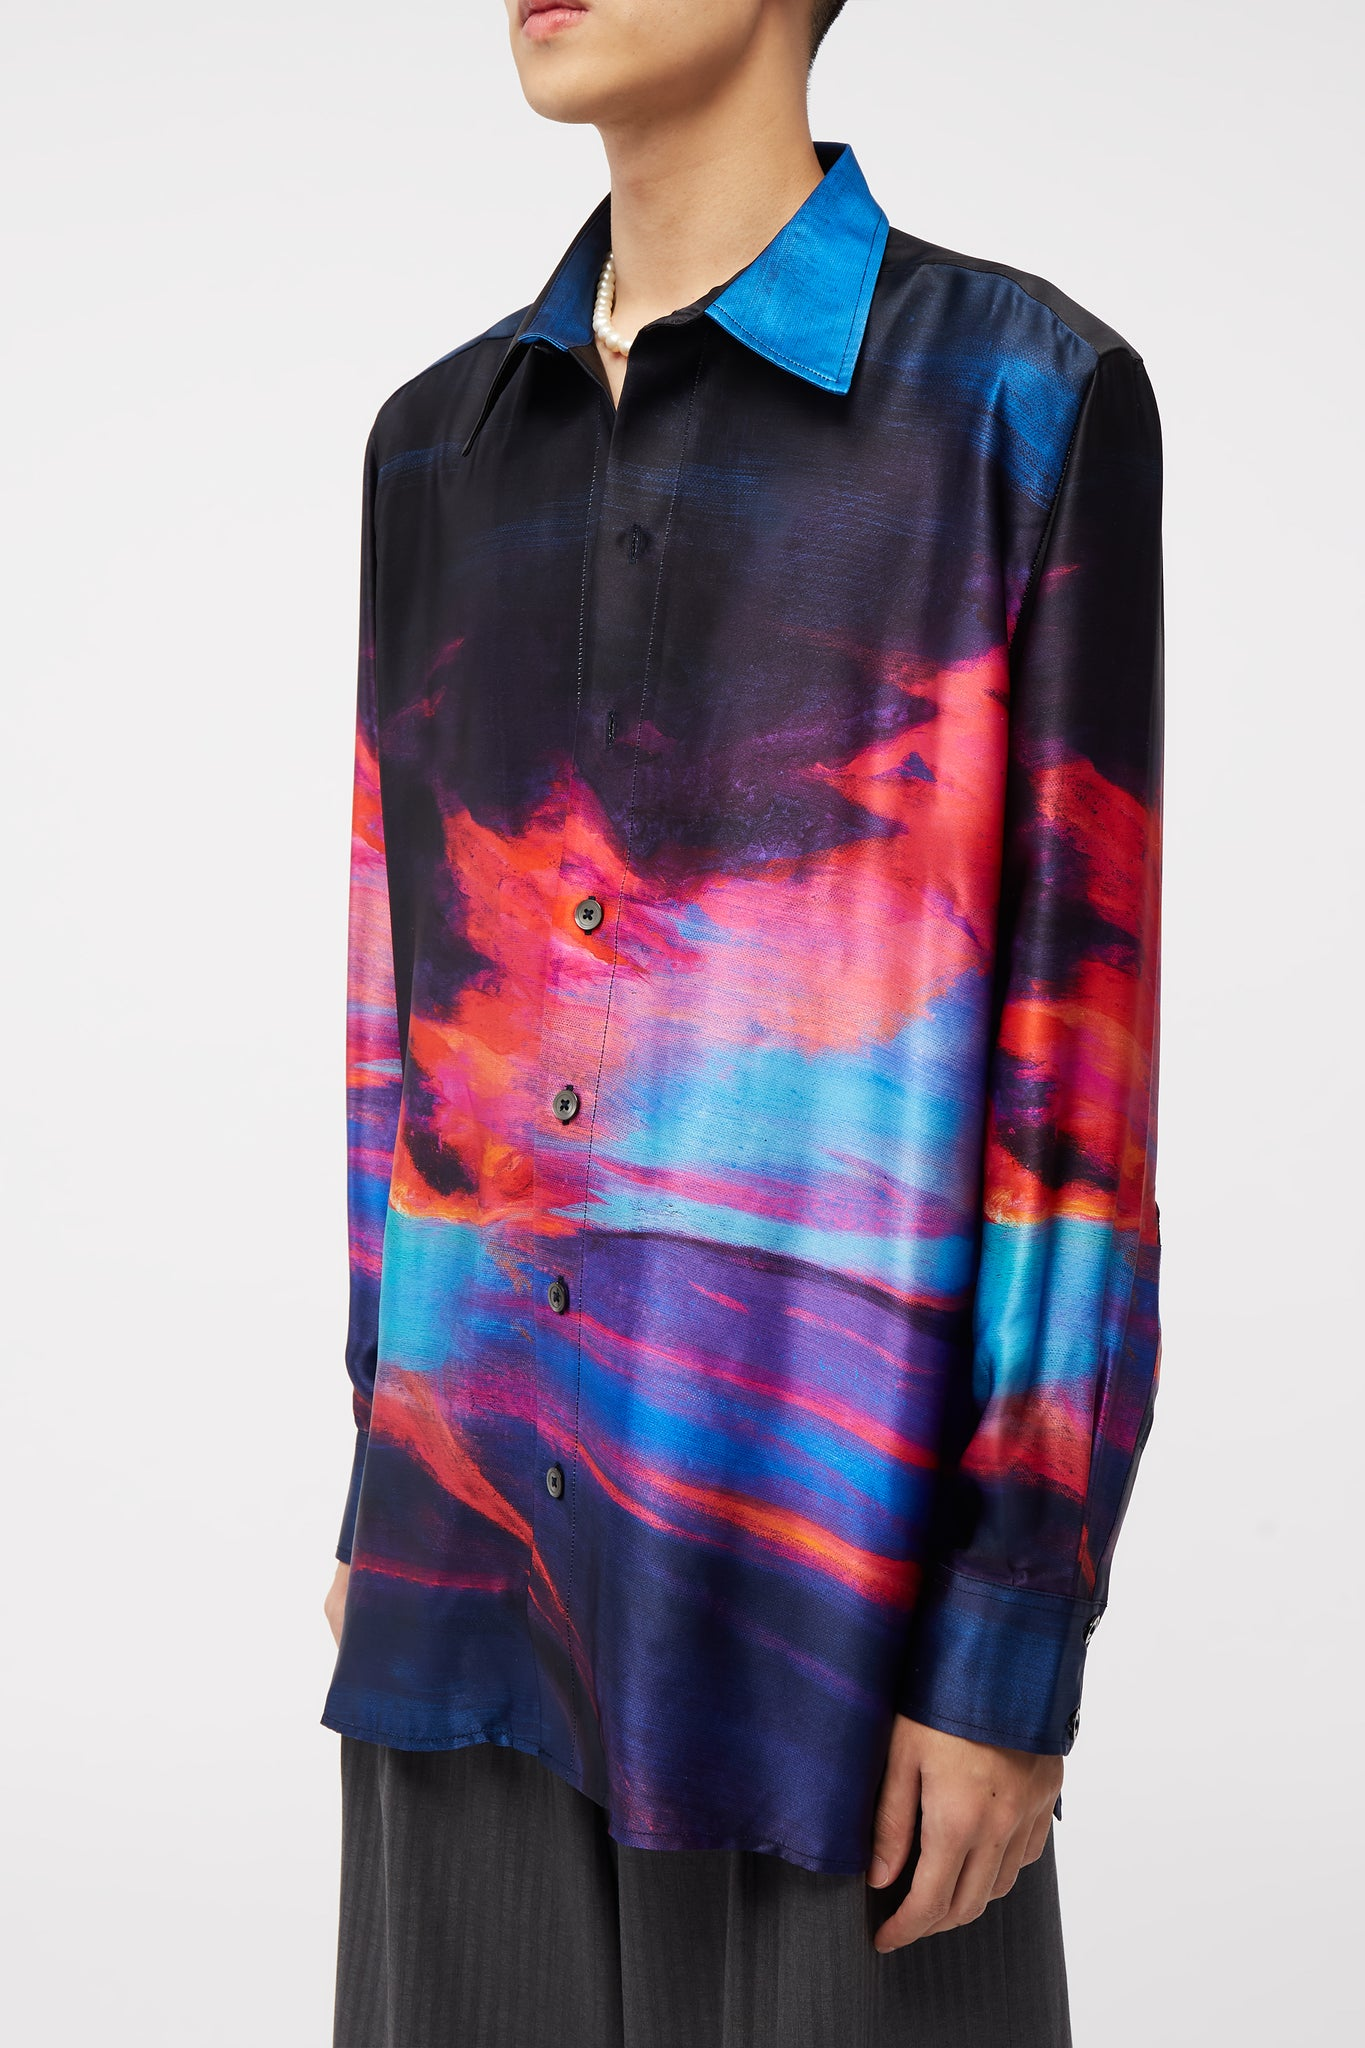 Ted Loose LS Shirt Psychedalic Oil Painting